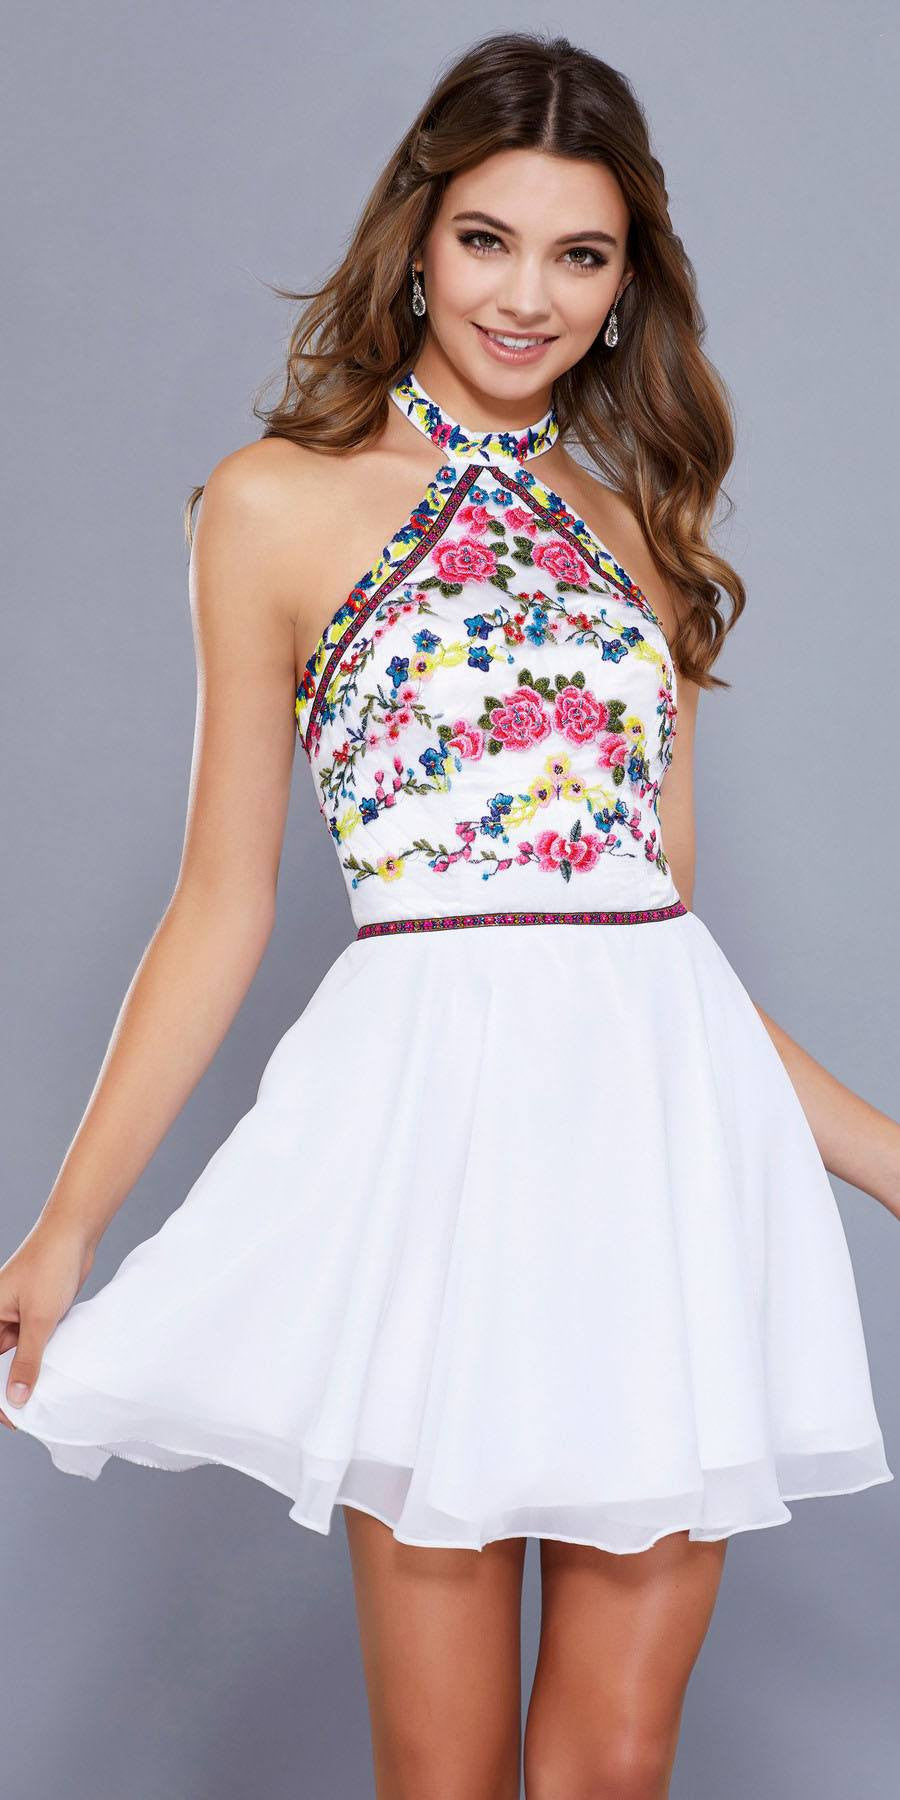 03efcd7858df Floral Embroidered Top Short Halter Homecoming Dress White. Tap to expand